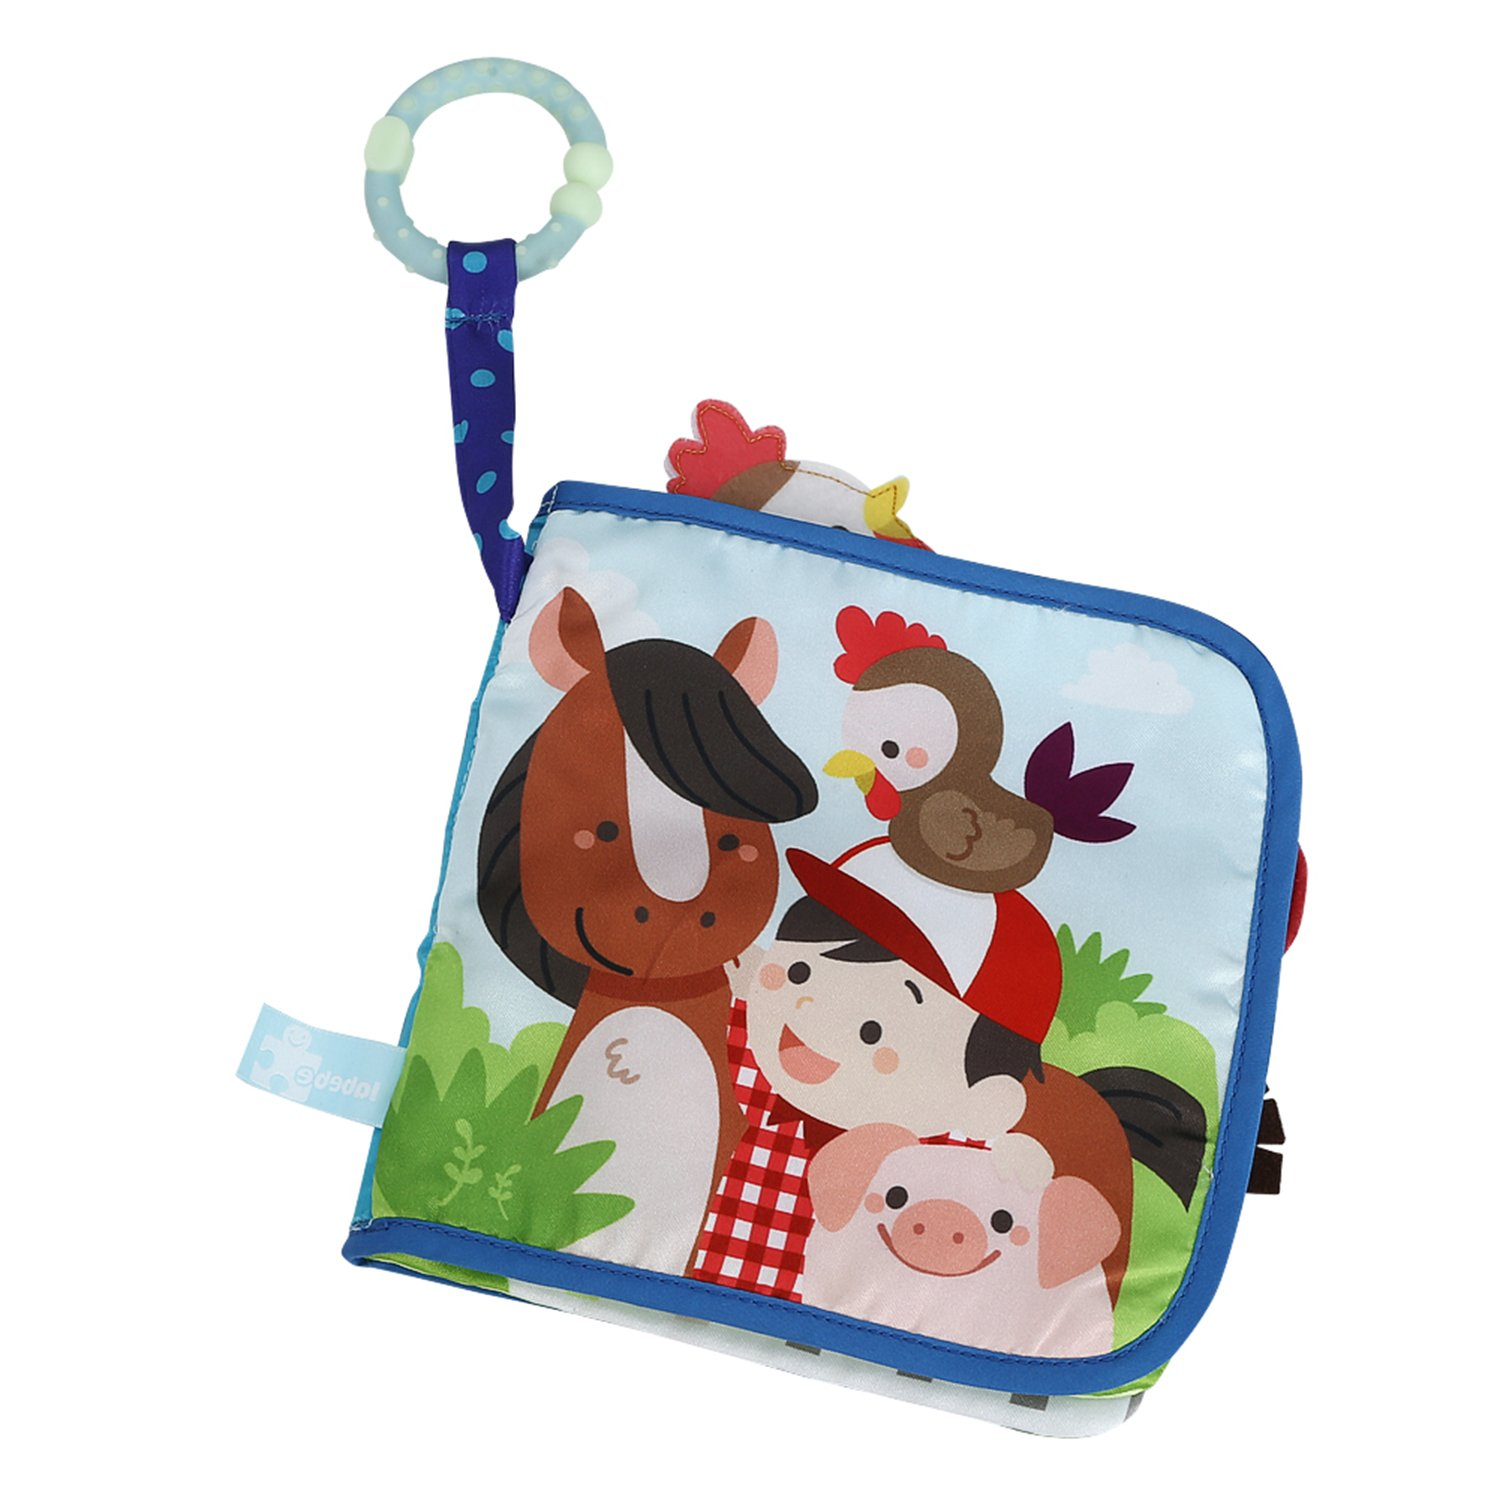 Labebe Baby Book, Farm Animal Activity Book, Cloth Toy Story Book for Baby Aged 3-24 Month, Baby First Book/Soft Book/Cloth Book/Toy Book/Fabric Book/Learning Book/Peekaboo Book/Toddler Activity Book